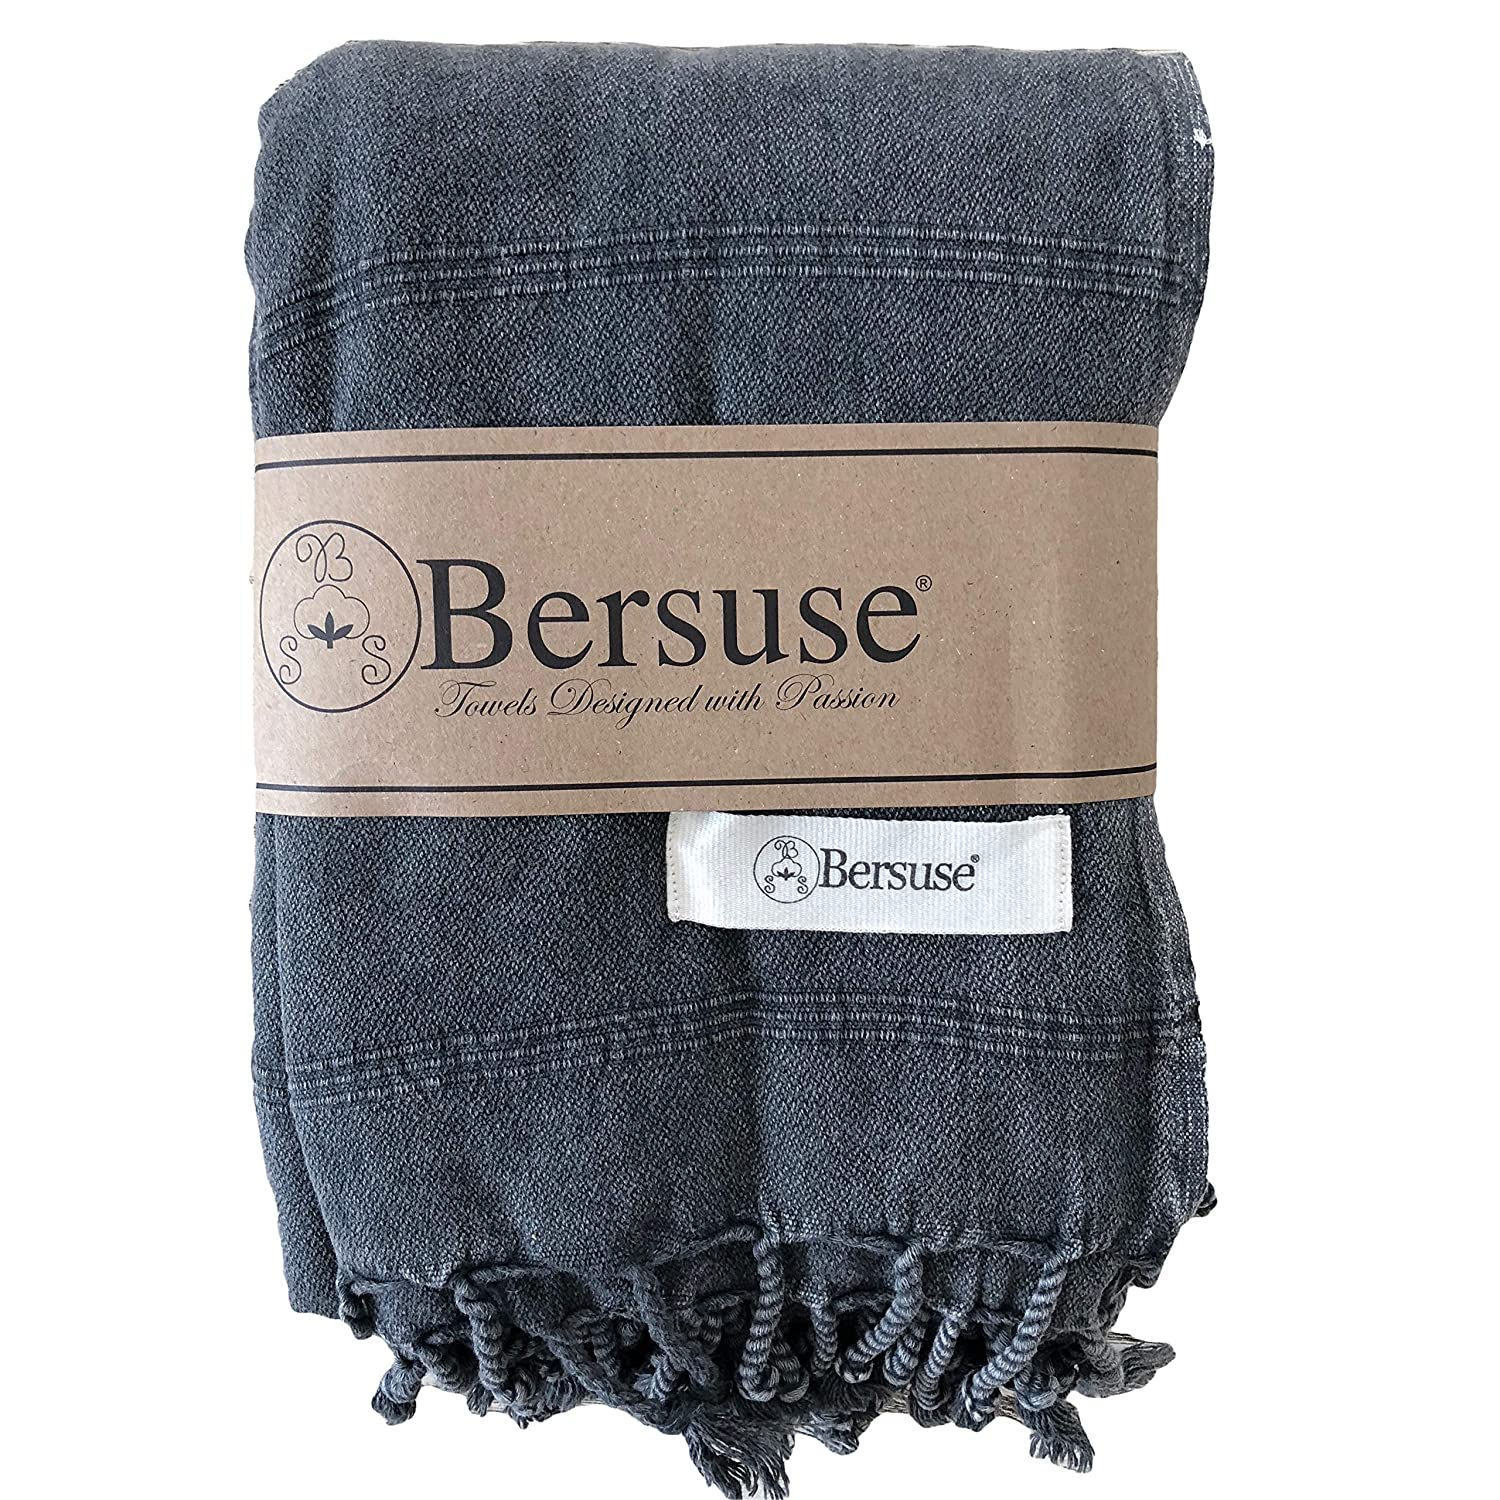 Bersuse 100% Cotton - Troy Extra Large (XL) Throw Blanket Turkish Towel - Bath Beach Fouta Peshtemal - Bed, Couch Throw, Table Cover, Picnic Mat - Stonewashed Handloom Weave - 60X82 Inches, Black